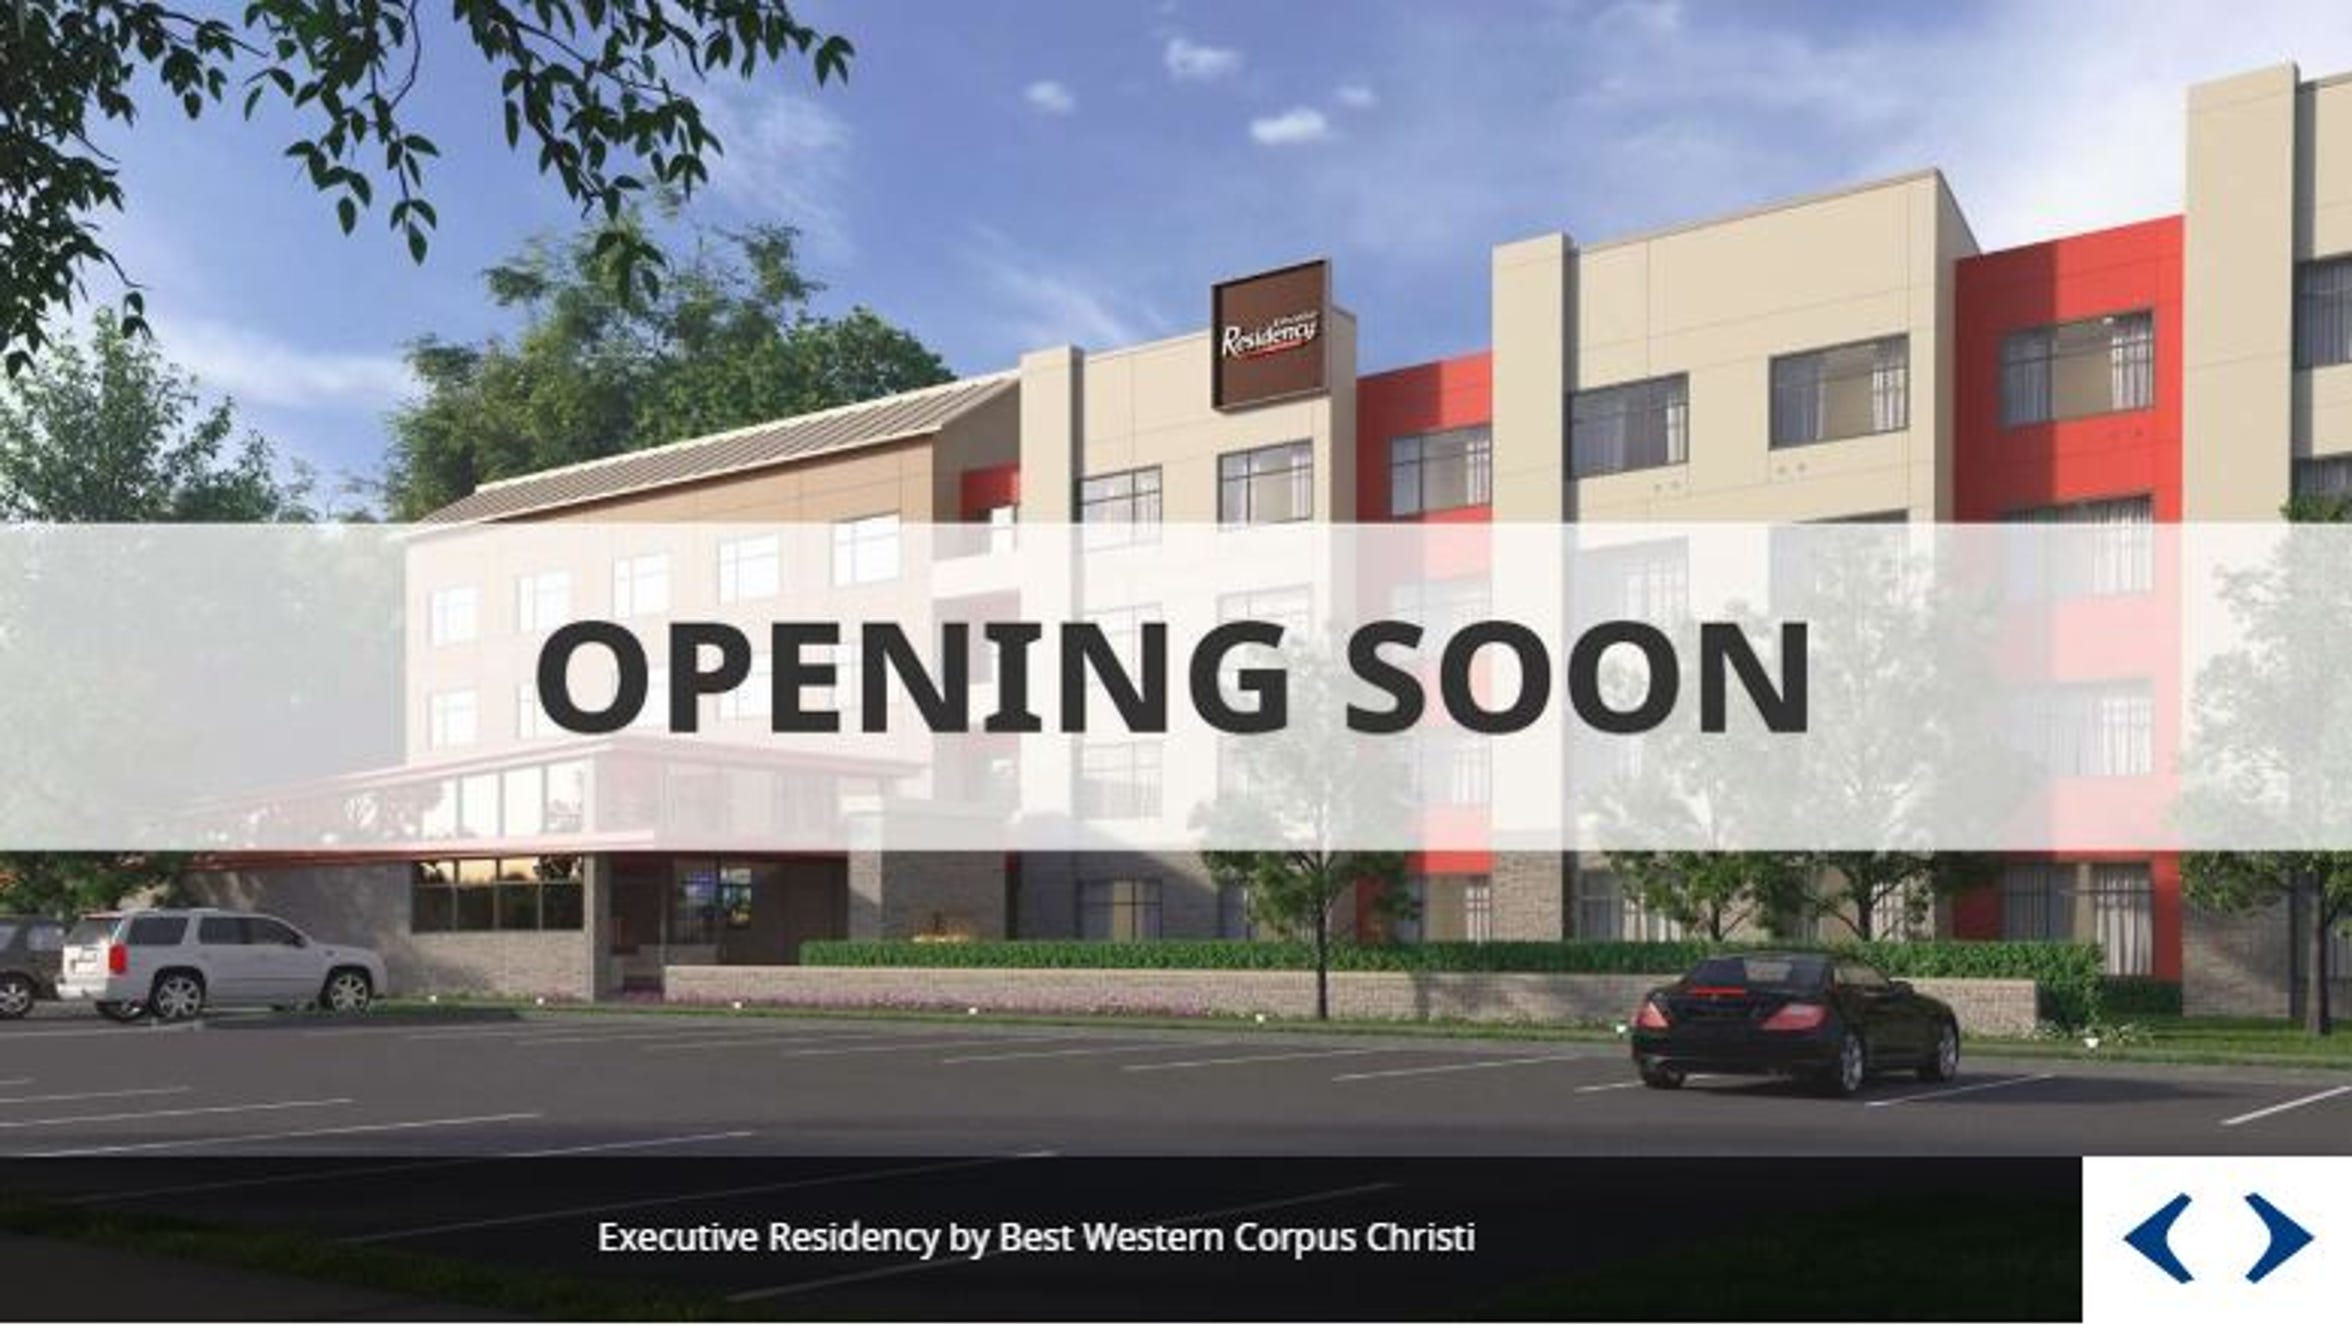 Executive Residency by Best Western Corpus Christi will open this fall at 9307 S. Padre Island Dr.